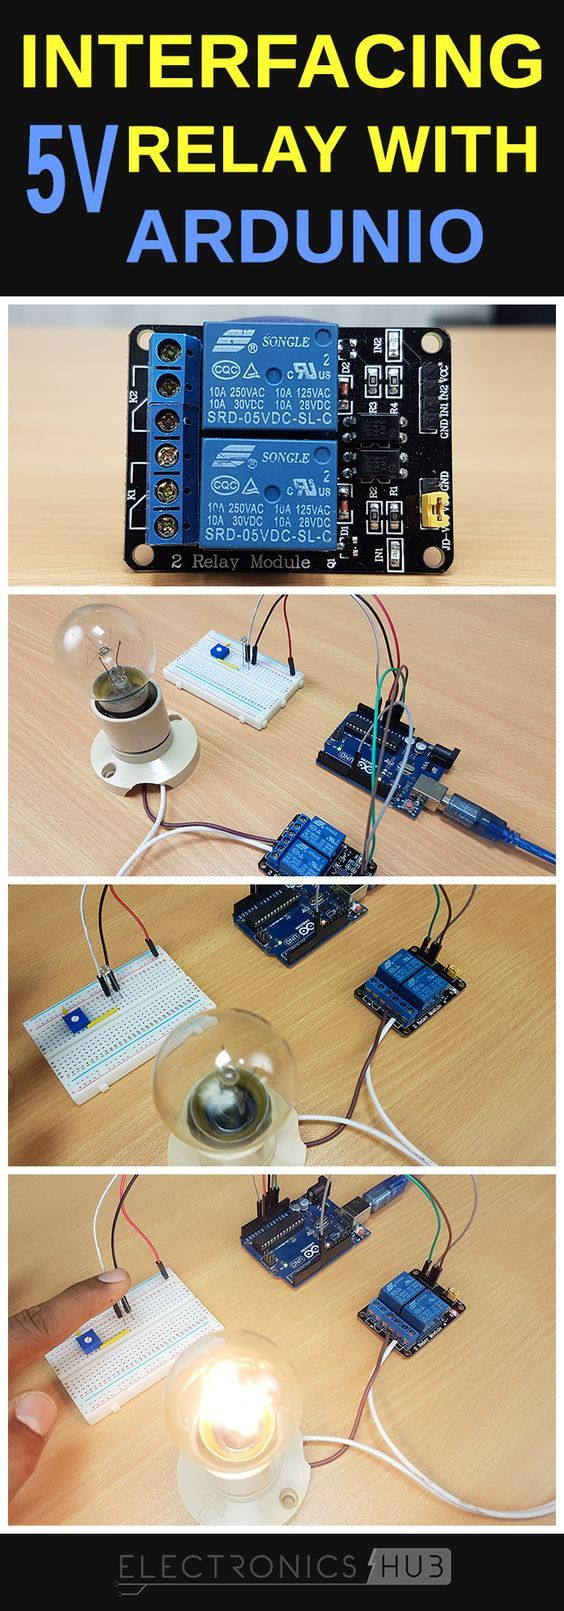 Neat Arduino projects